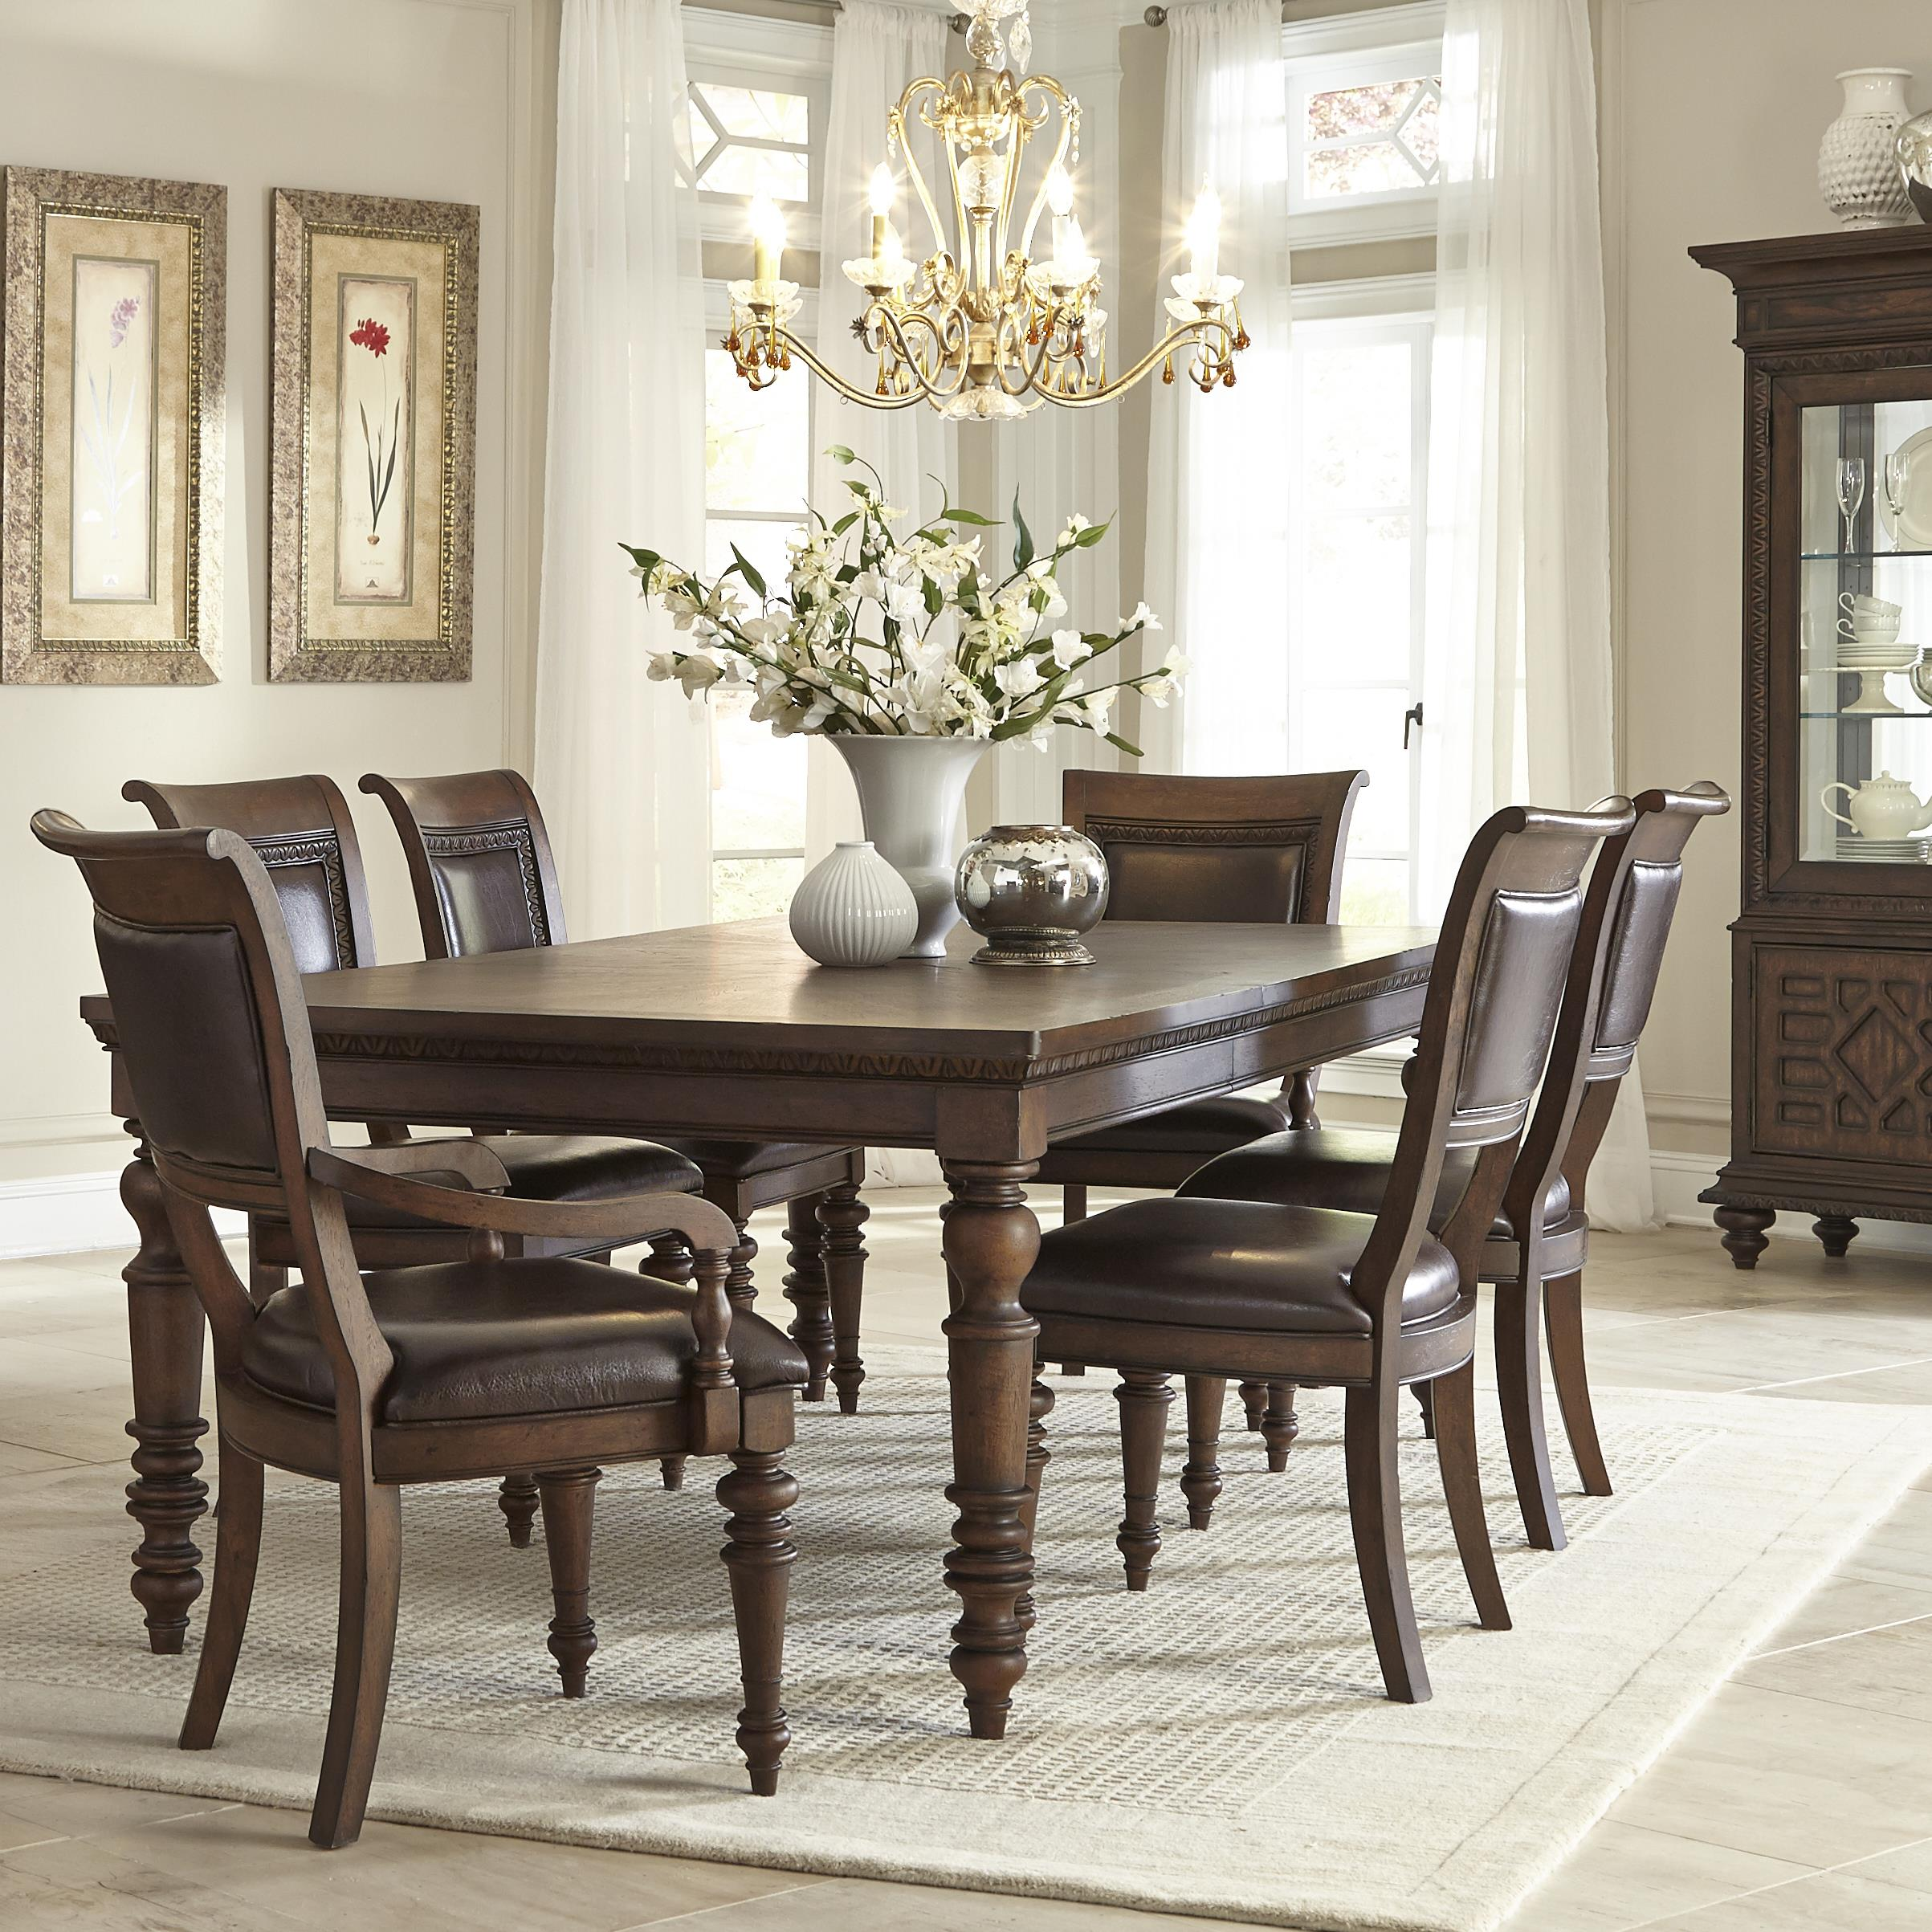 Klaussner International Palencia Rectangular Dining Table with 2